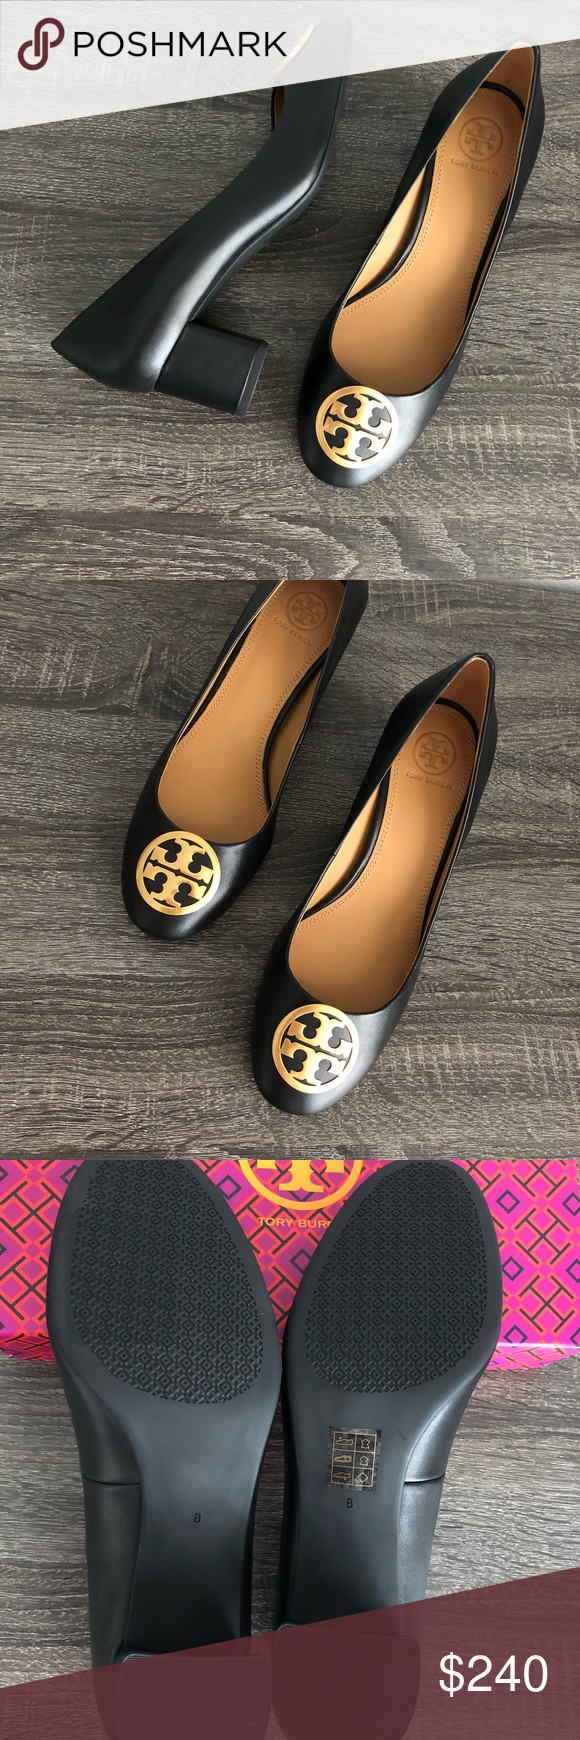 142c3ea37ad453 Tory Burch Benton Pump Black Nappa leather with gold tone logo 50mm pump  -heel about 1.75